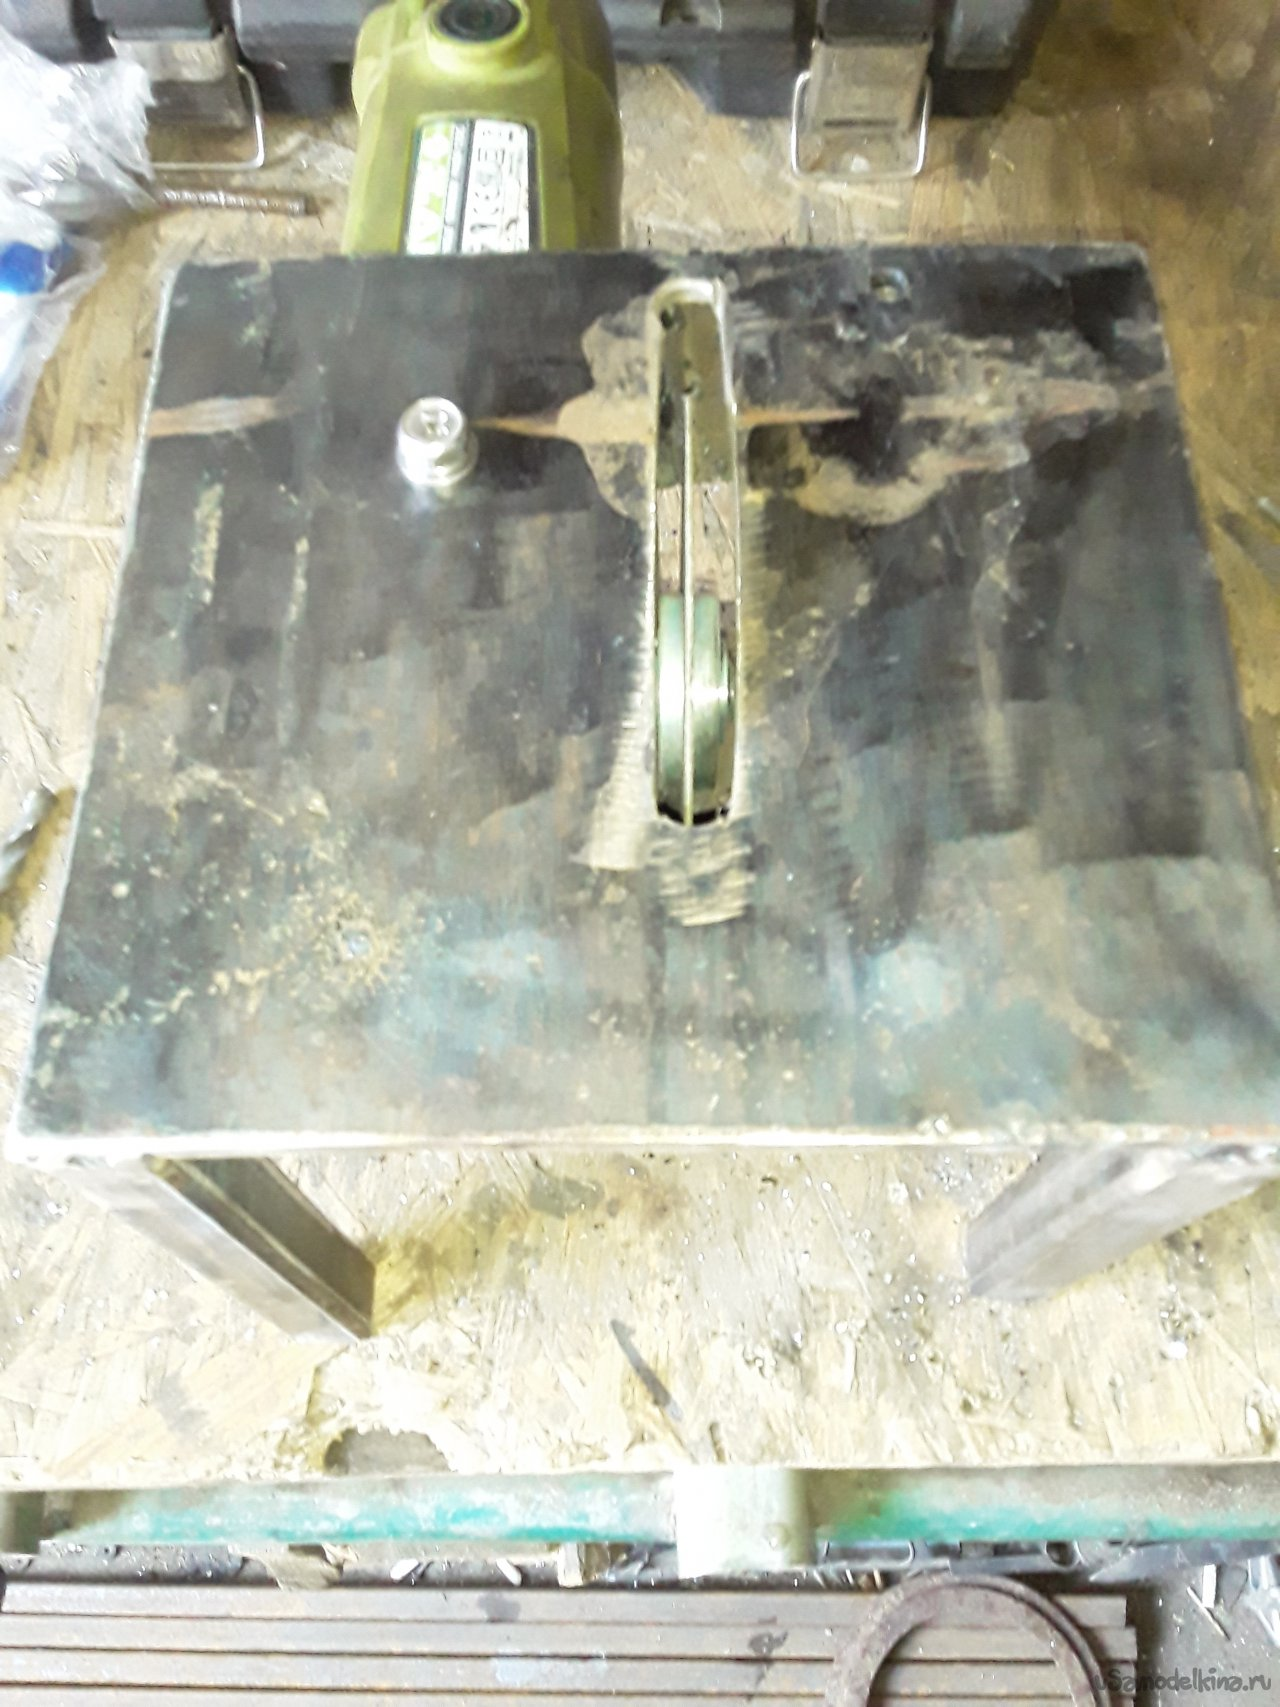 Cutting table for grinder